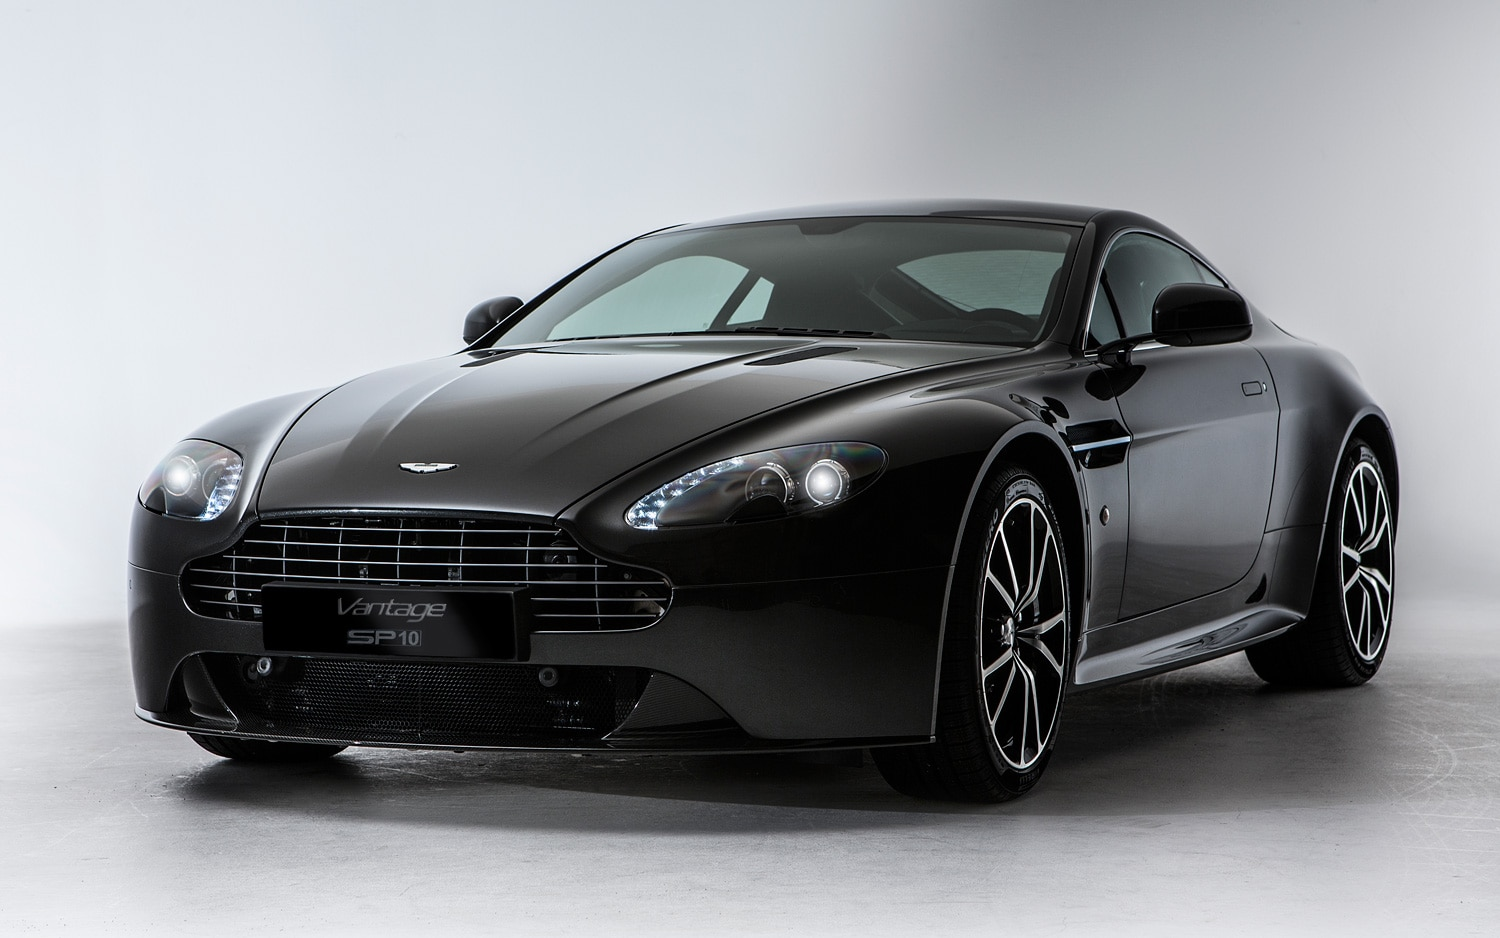 Aston Martin Vantage SP10 Front Three Quarter1